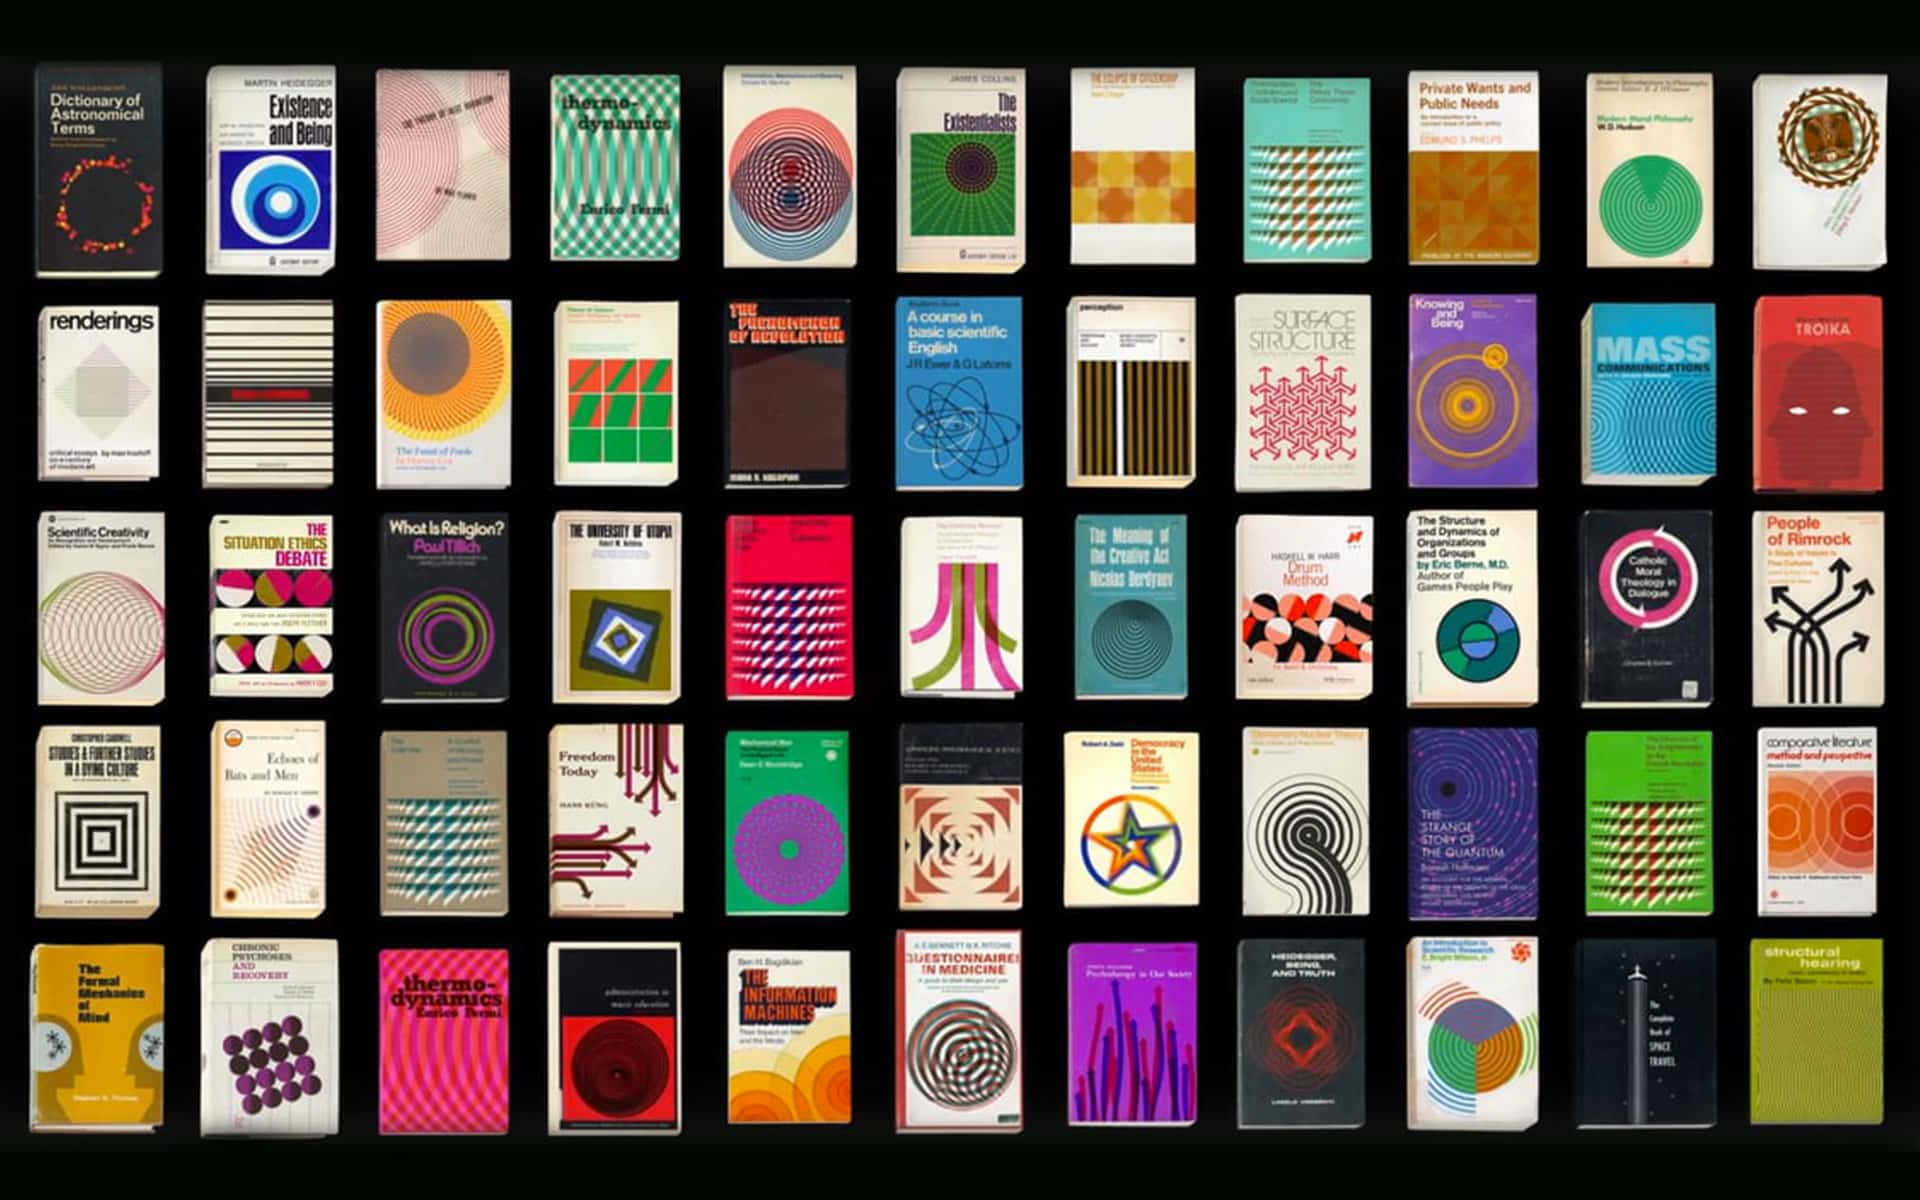 A series of 66 animated vintage book graphics